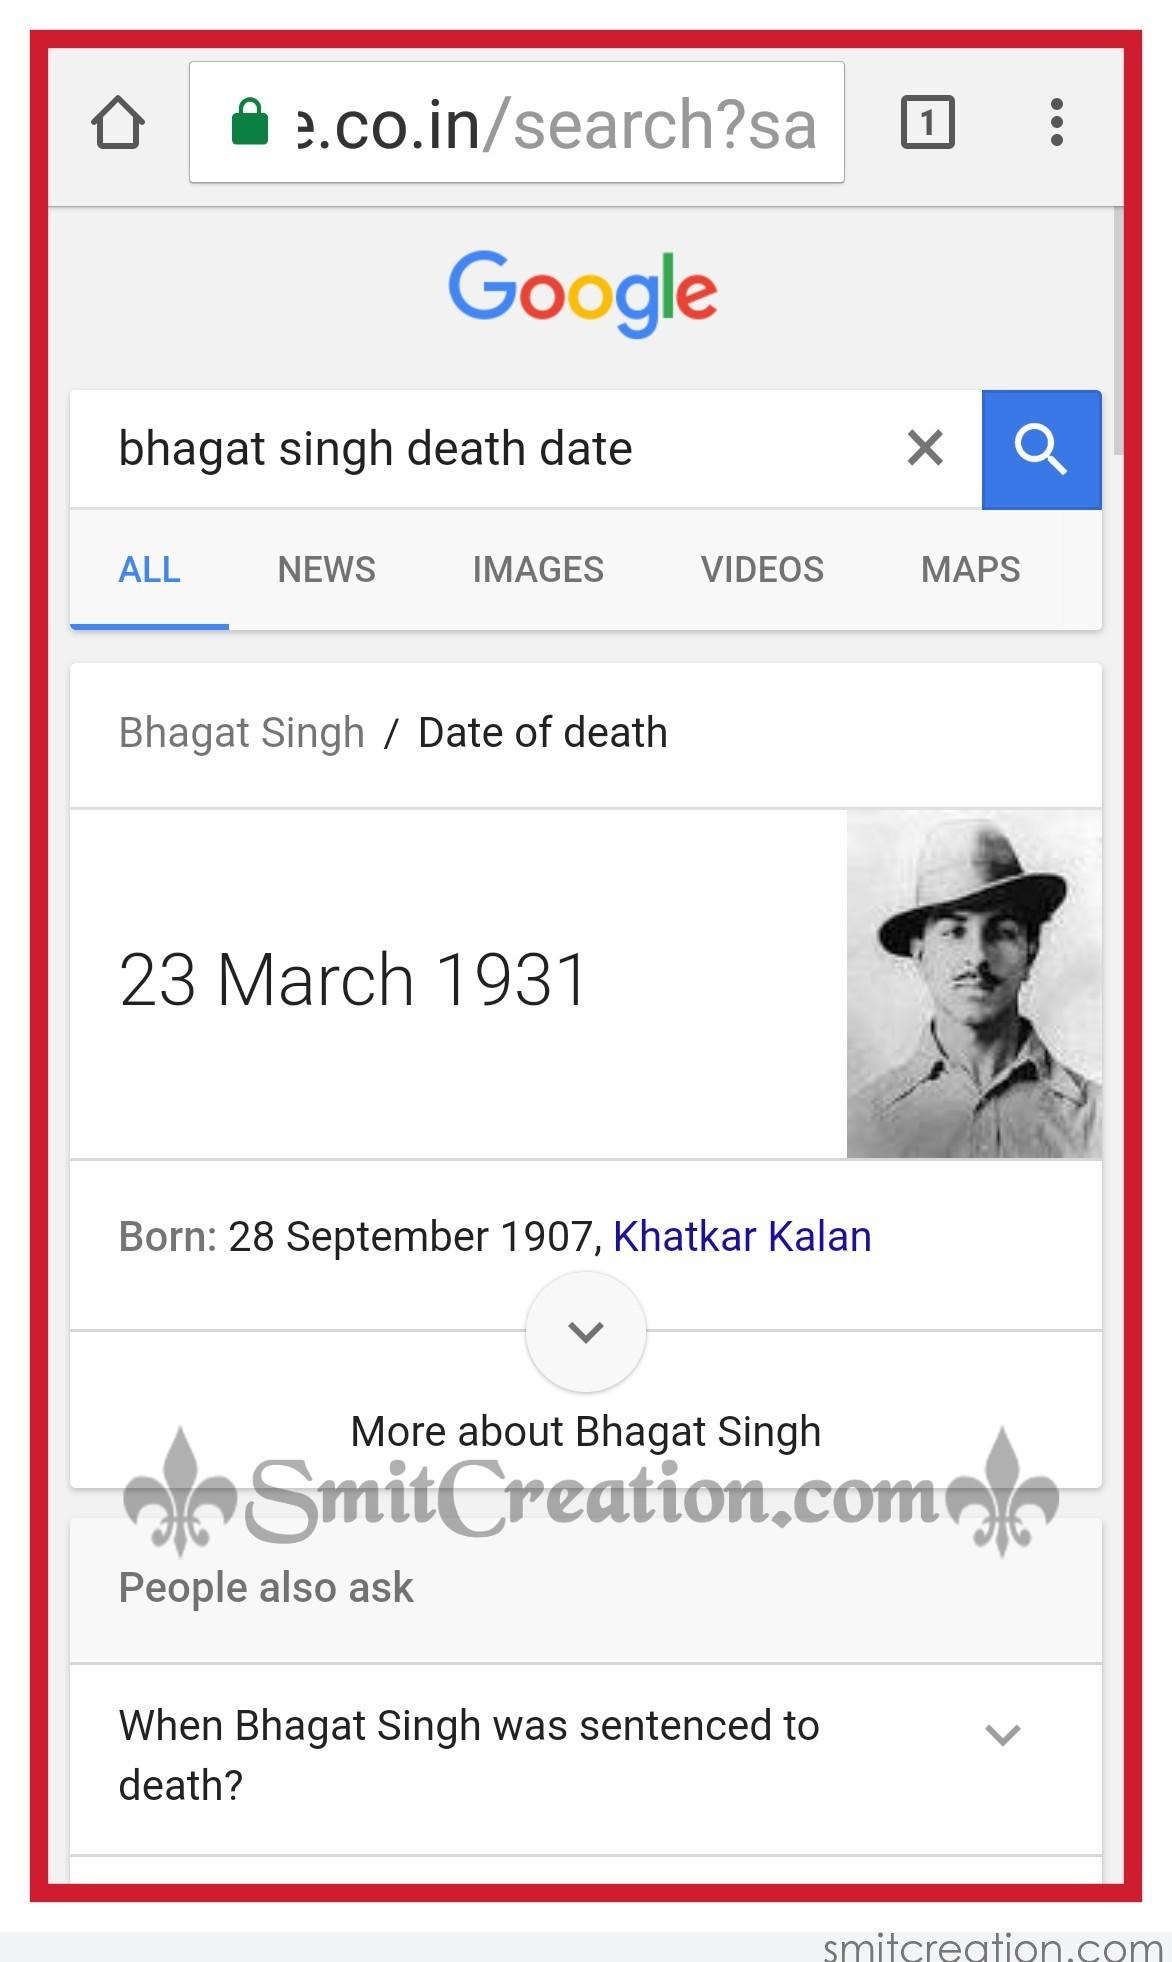 Beaware of Fake News about Bhagat Singh hanged - SmitCreation com